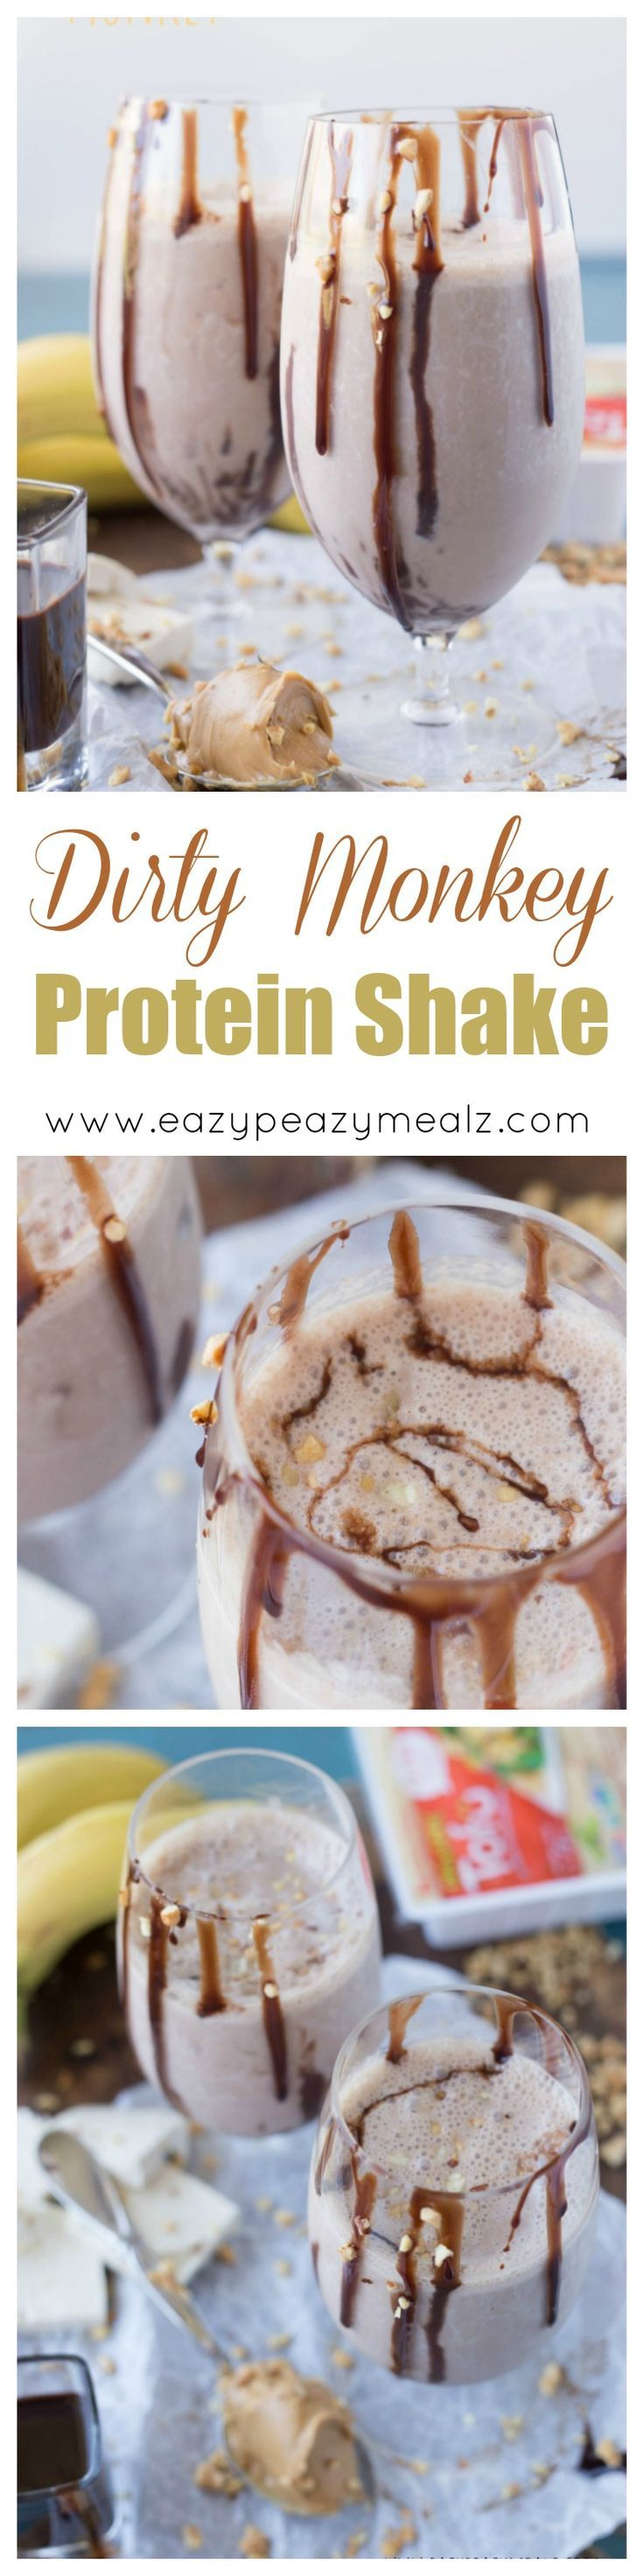 A protein shake packed with flavor, and creamy enough to be a milkshake! You will think you are drinking a chocolate milkshake when in reality you are getting something healthy and delicious. #ad - Eazy Peazy Mealz